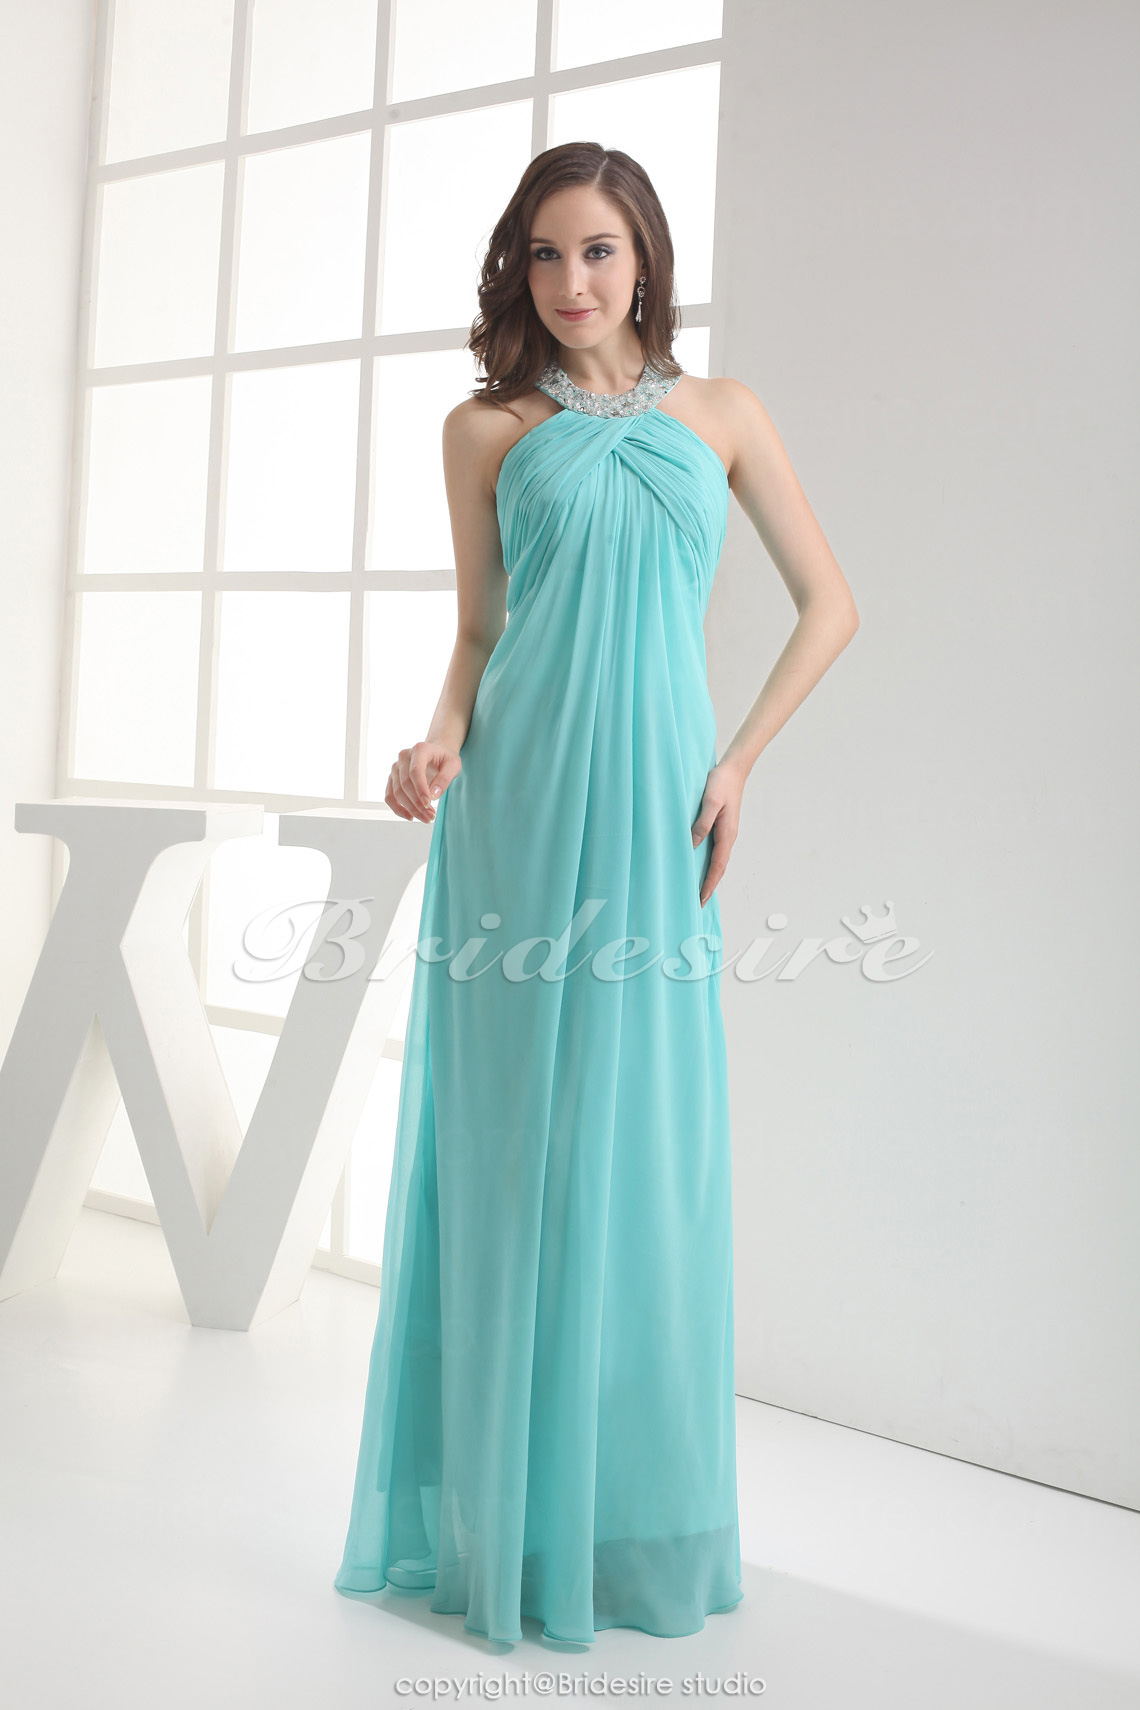 sheath/column halter floor-length sleeveless chiffon bridesmaid dress